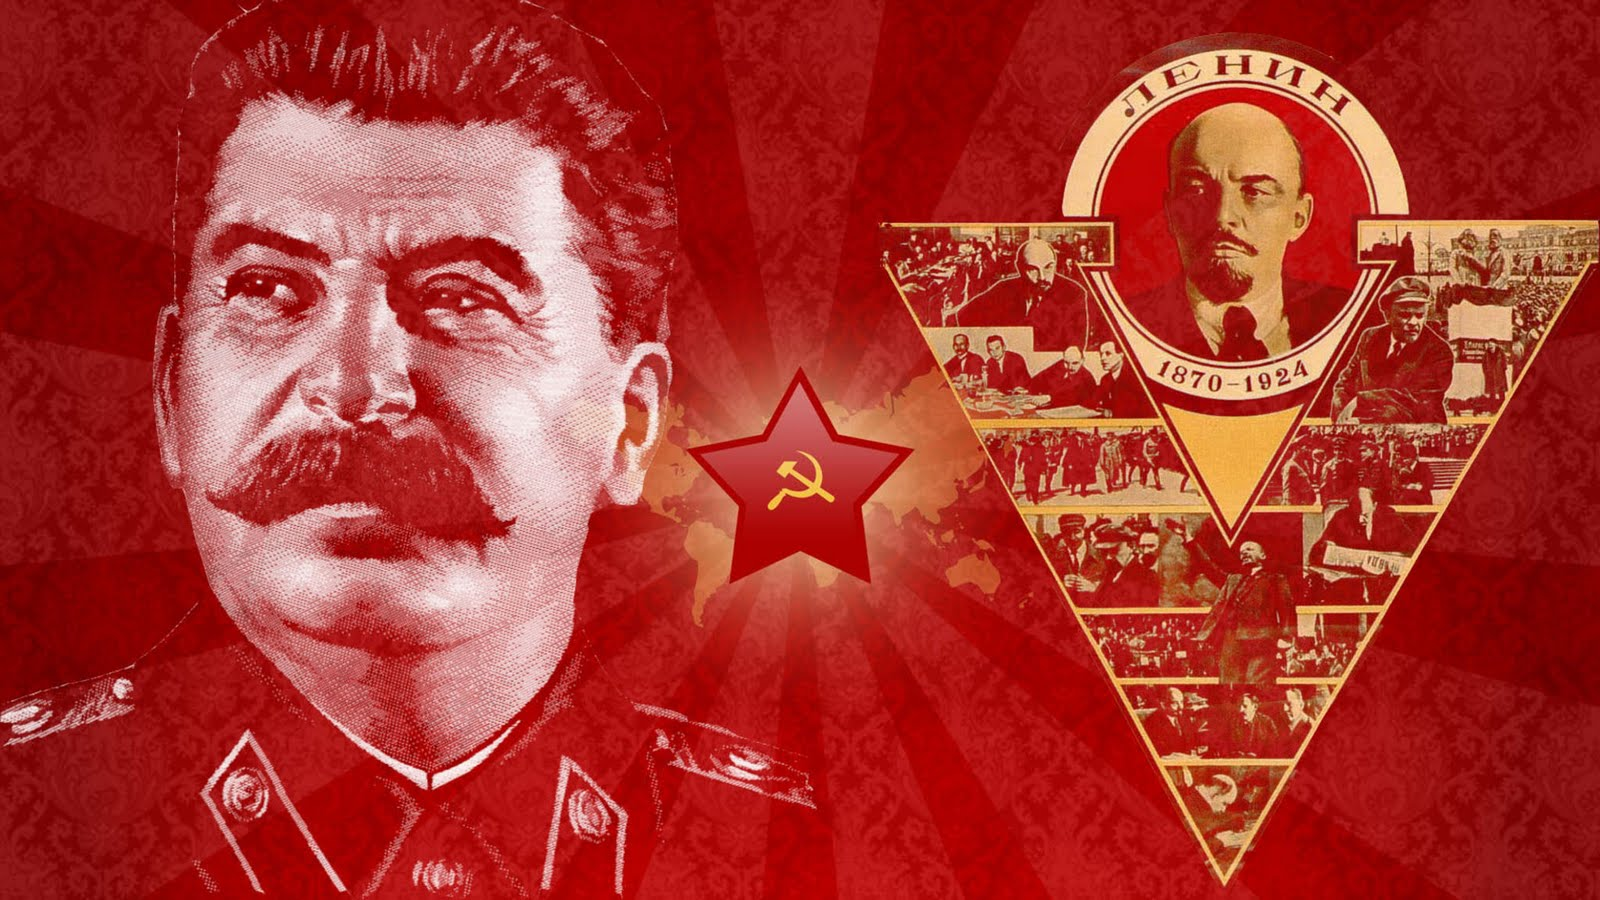 stalin new biography of a dictator by oleg v khlevniuk stalin poster